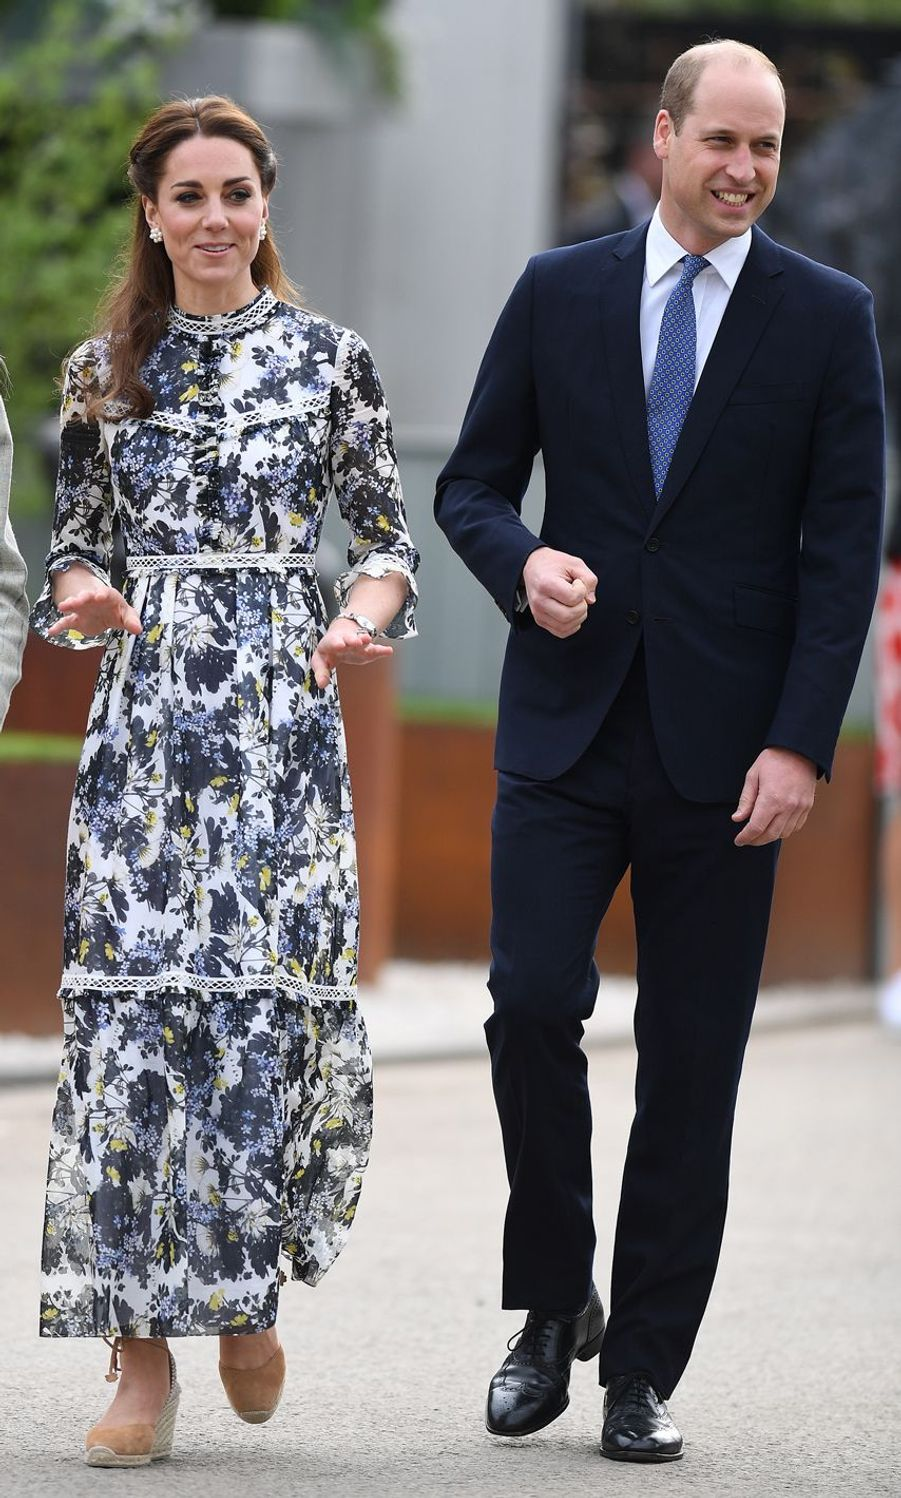 Kate Middleton et William au Chelsea Flower Show de Londres, le 20 mai 2019